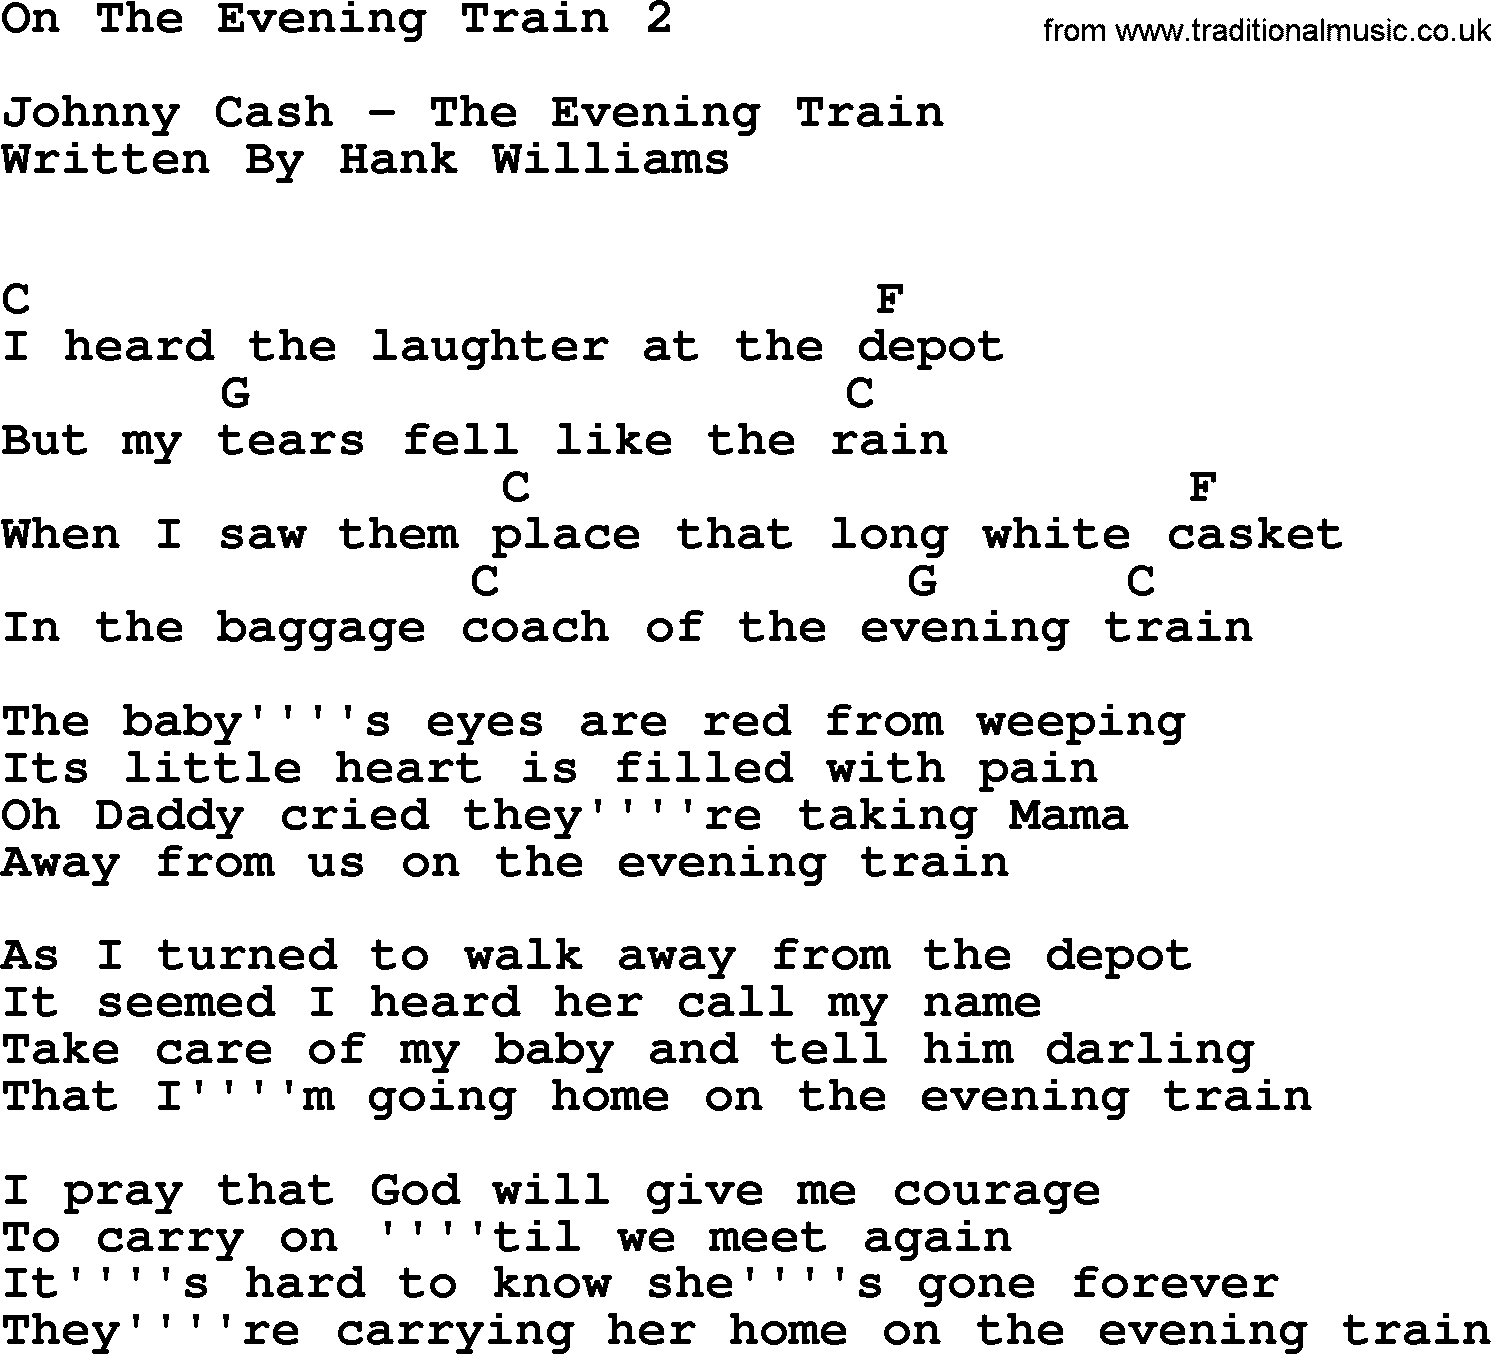 Johnny Cash Song On The Evening Train 2 Lyrics And Chords